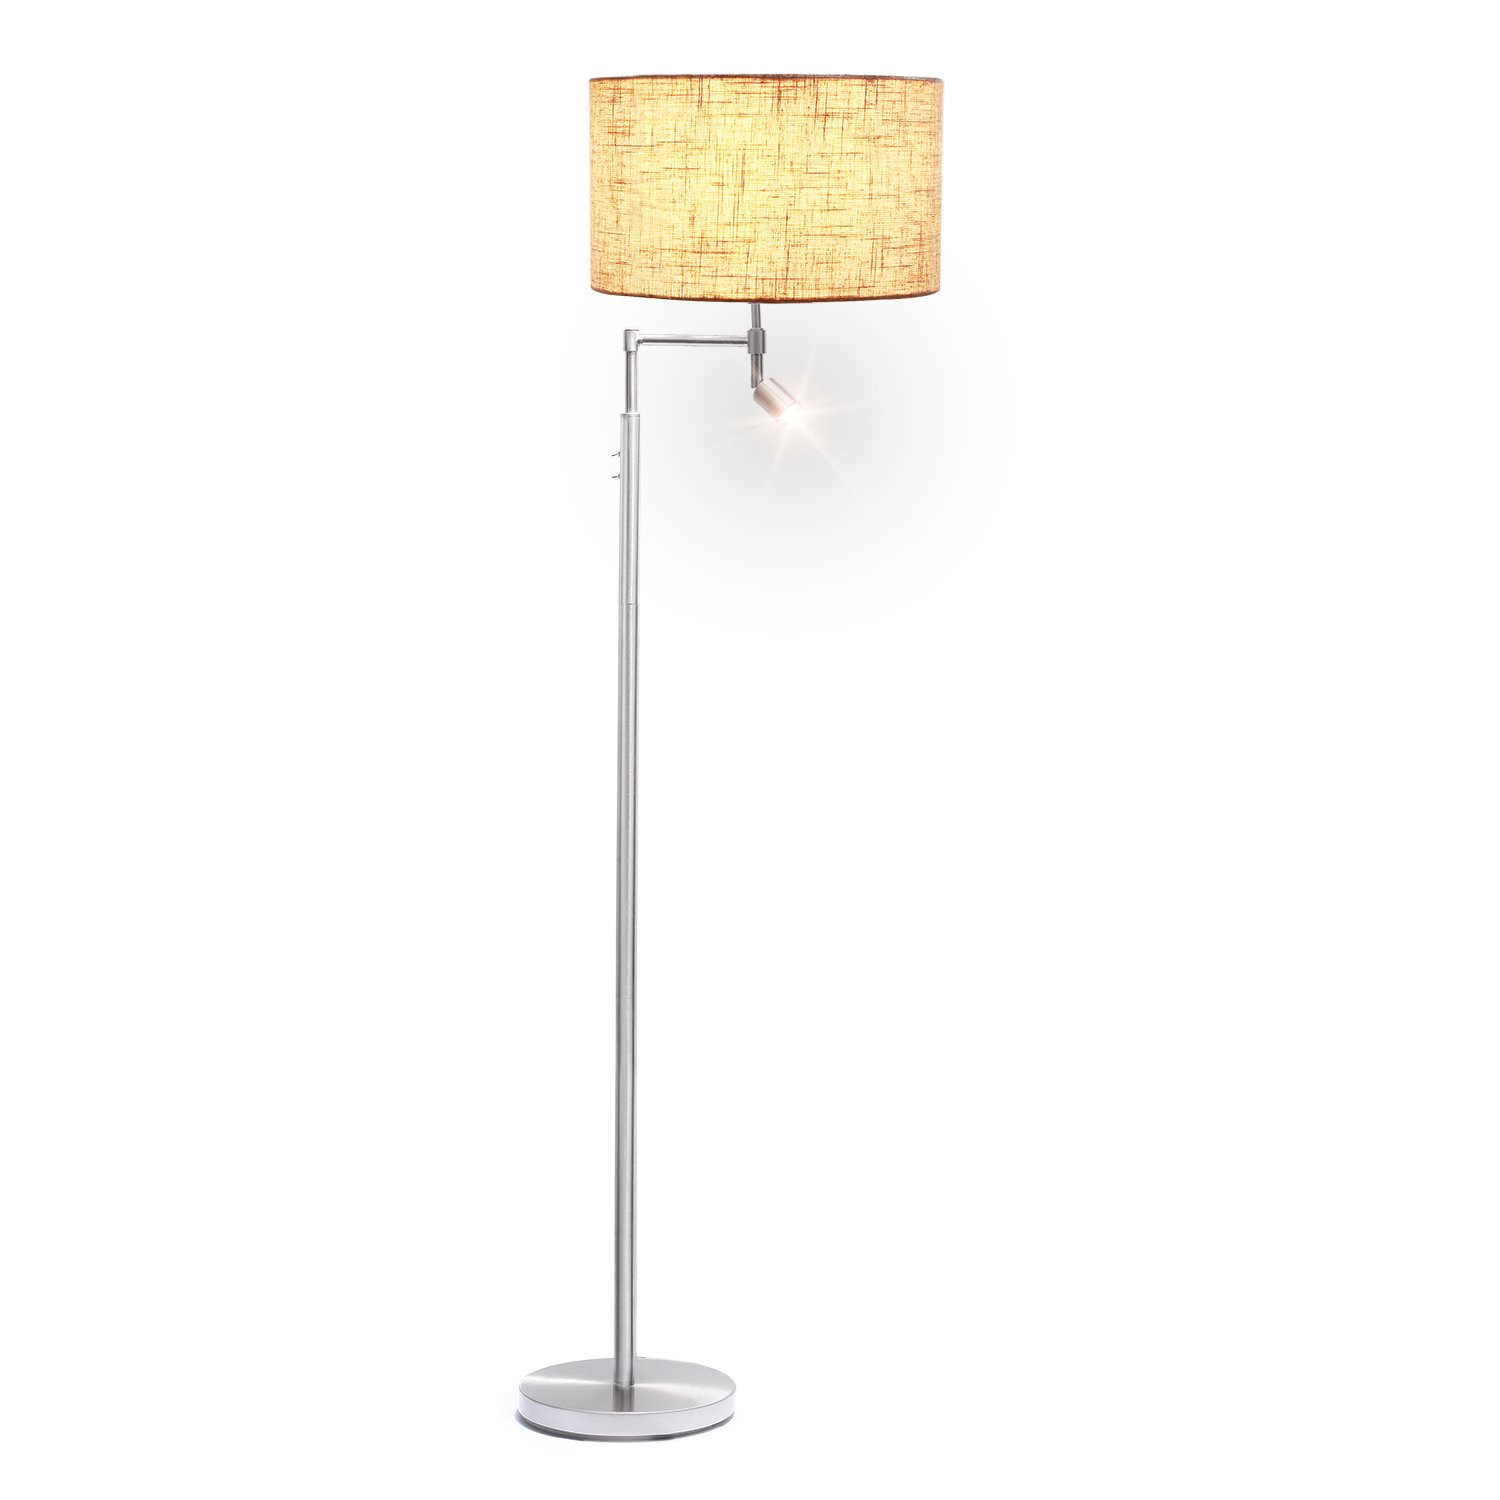 Floor Lamp with Reading Light, AVAWAY Drum Shade Standing Lamp with 360° Rotable LED Reading Lamp for Living Room, Bedroom, Office